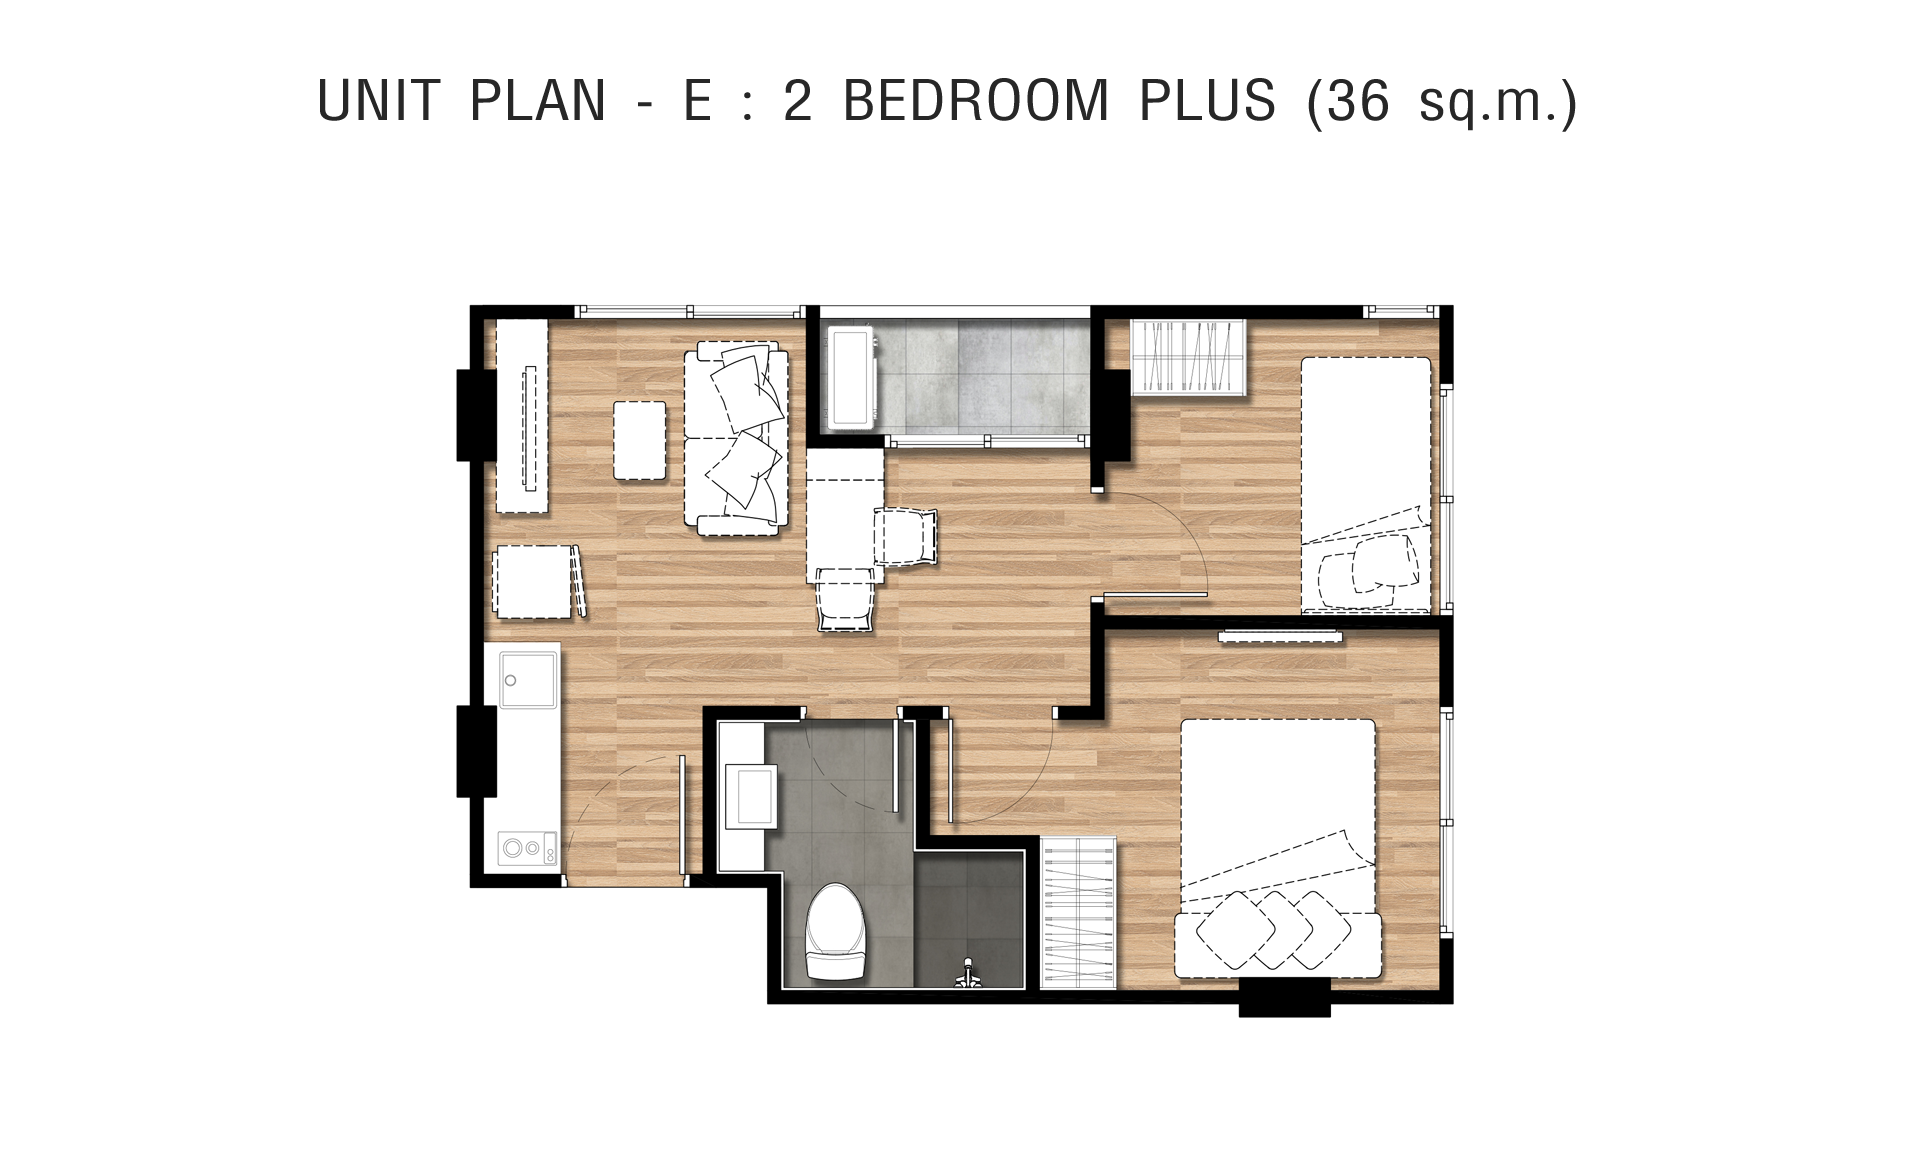 UNIT PLAN - TYPE E